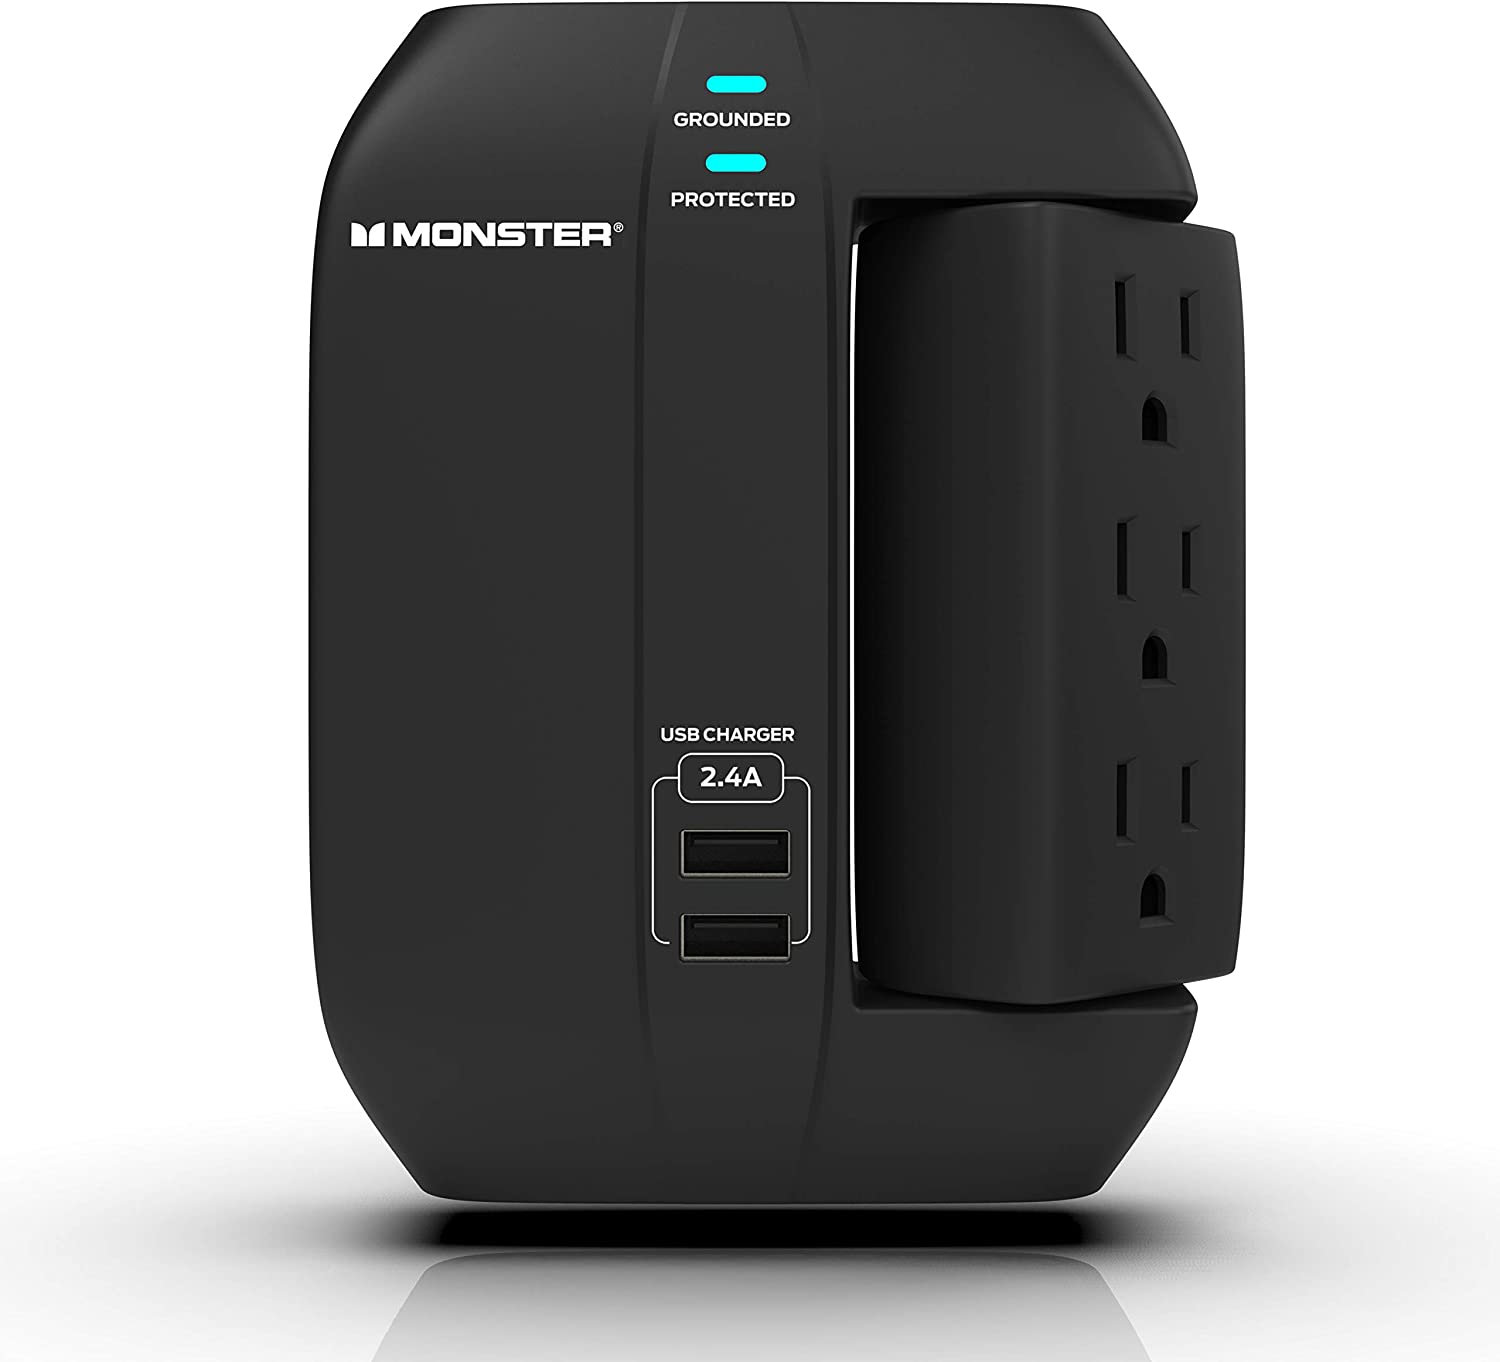 Monster Swivel Socket Wall Tap Surge Protector - Power Surge Protector with Wall Mount - Heavy Duty Protection with up to 6 AC and 2 USB Ports, Black, 6-Outlet with Swivel and 2 USB Ports